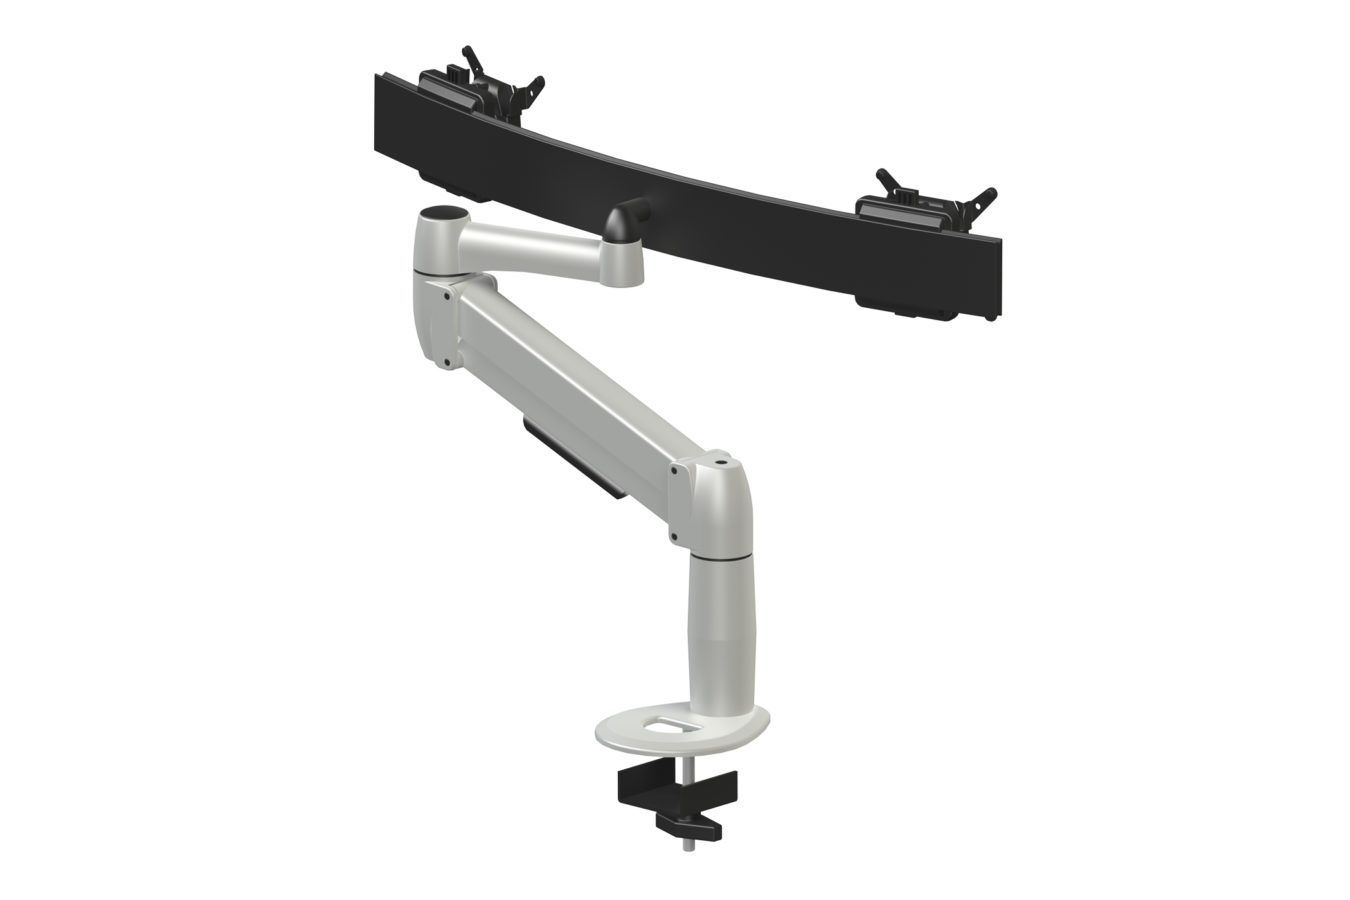 Space-arm Beam Brazo para monitor